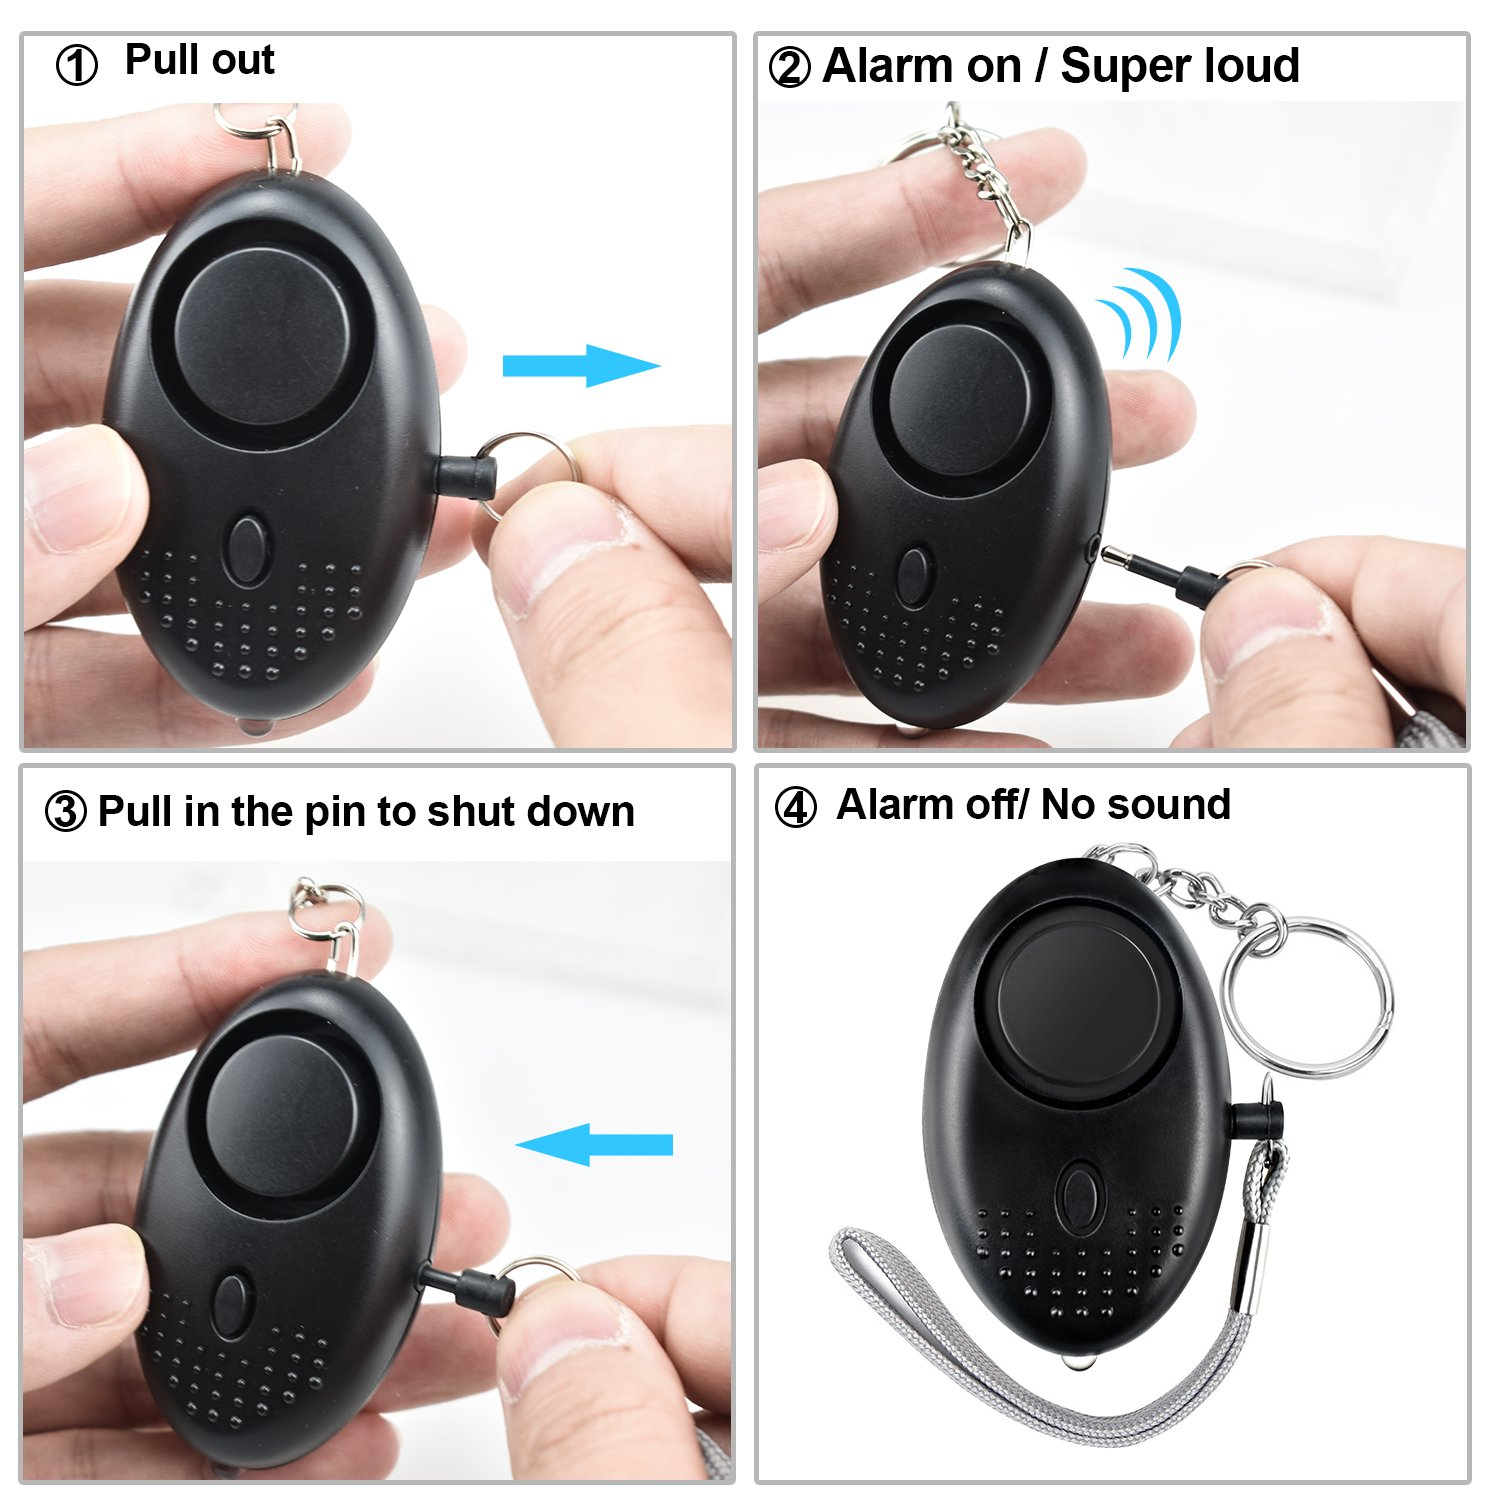 Personal Portable Security Alarms with LED Lights PECHAM Safesound Personal Alarm Keychain 130dB Personal Safety Alarms for Women Self Defense